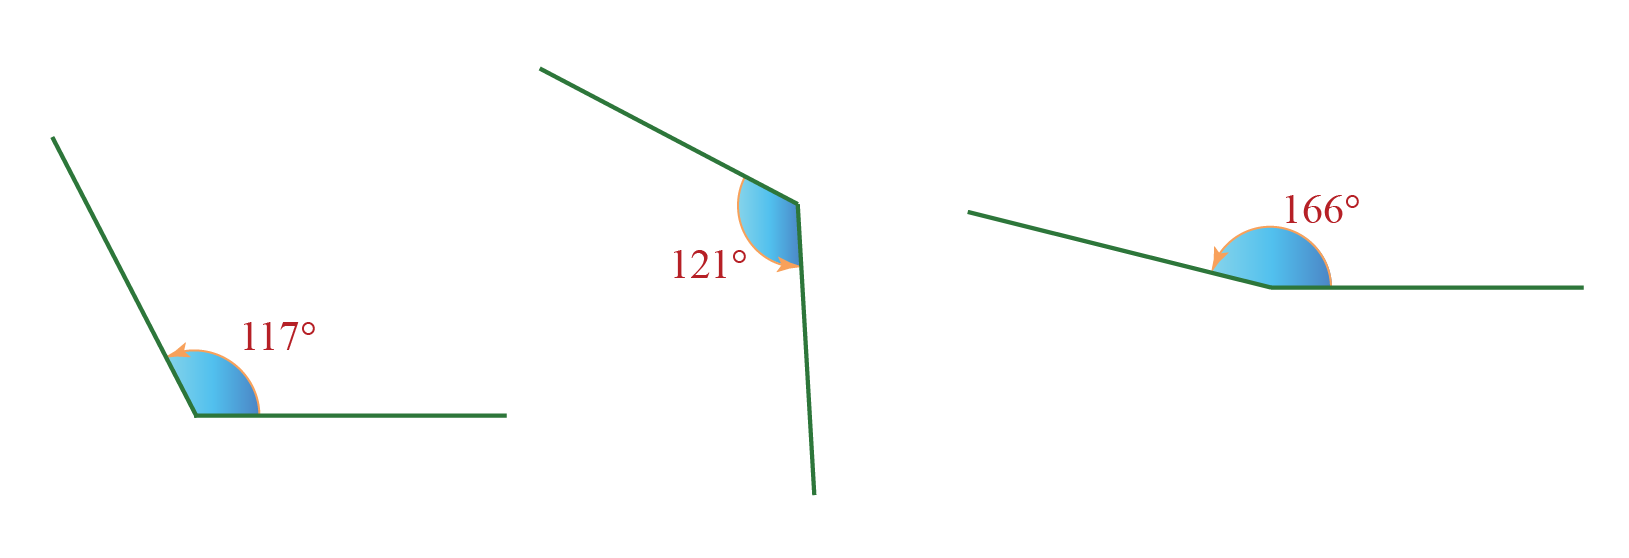 Obtuse angle definition in Math: angles measuring more than 90 degrees and less than 180 degrees